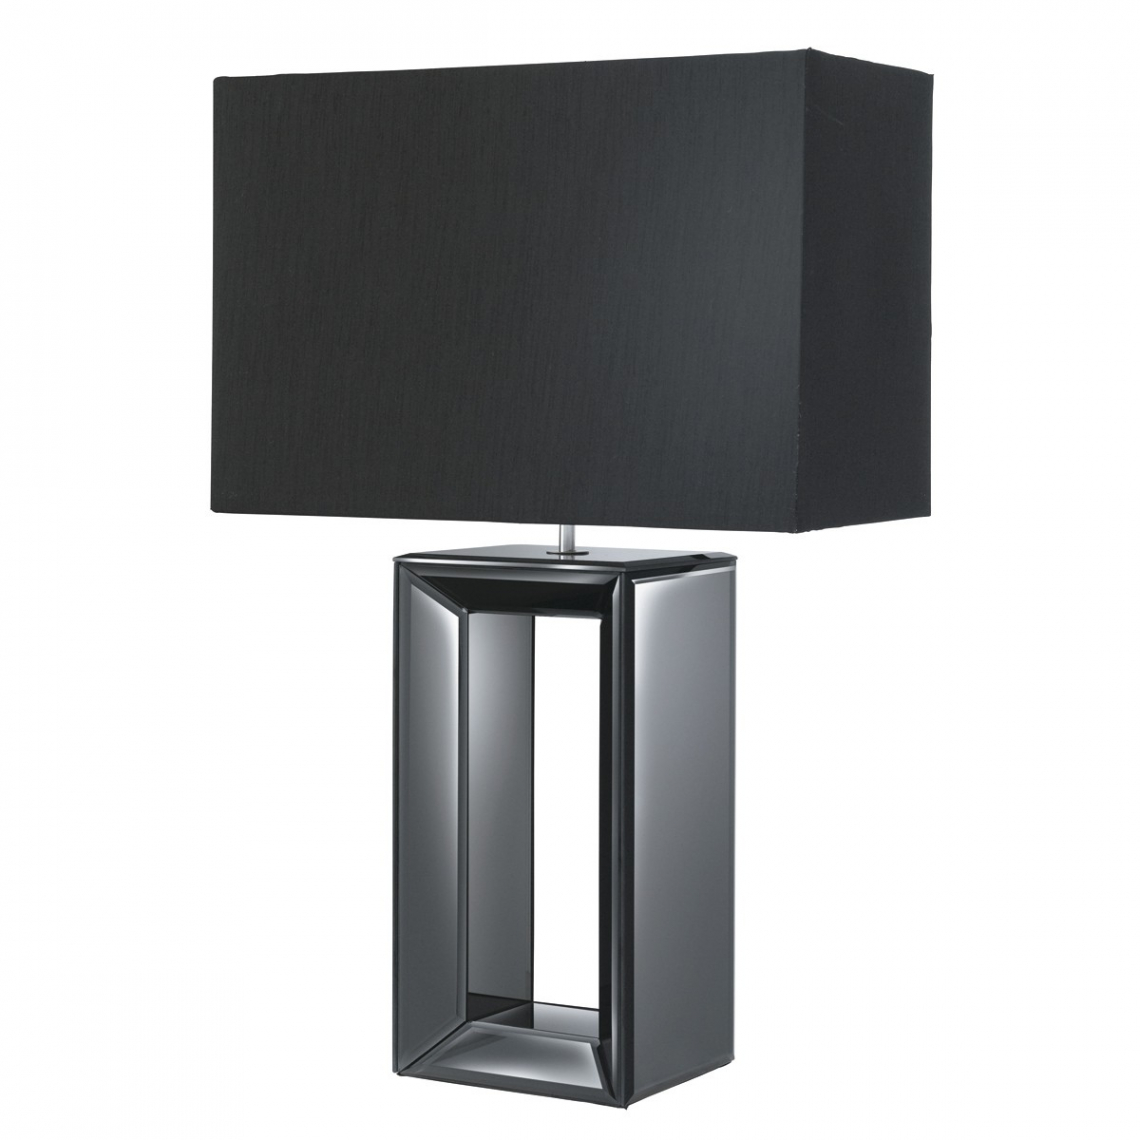 Black Mirror Reflection Table Lamp with Black Oblong Faux Silk Shade